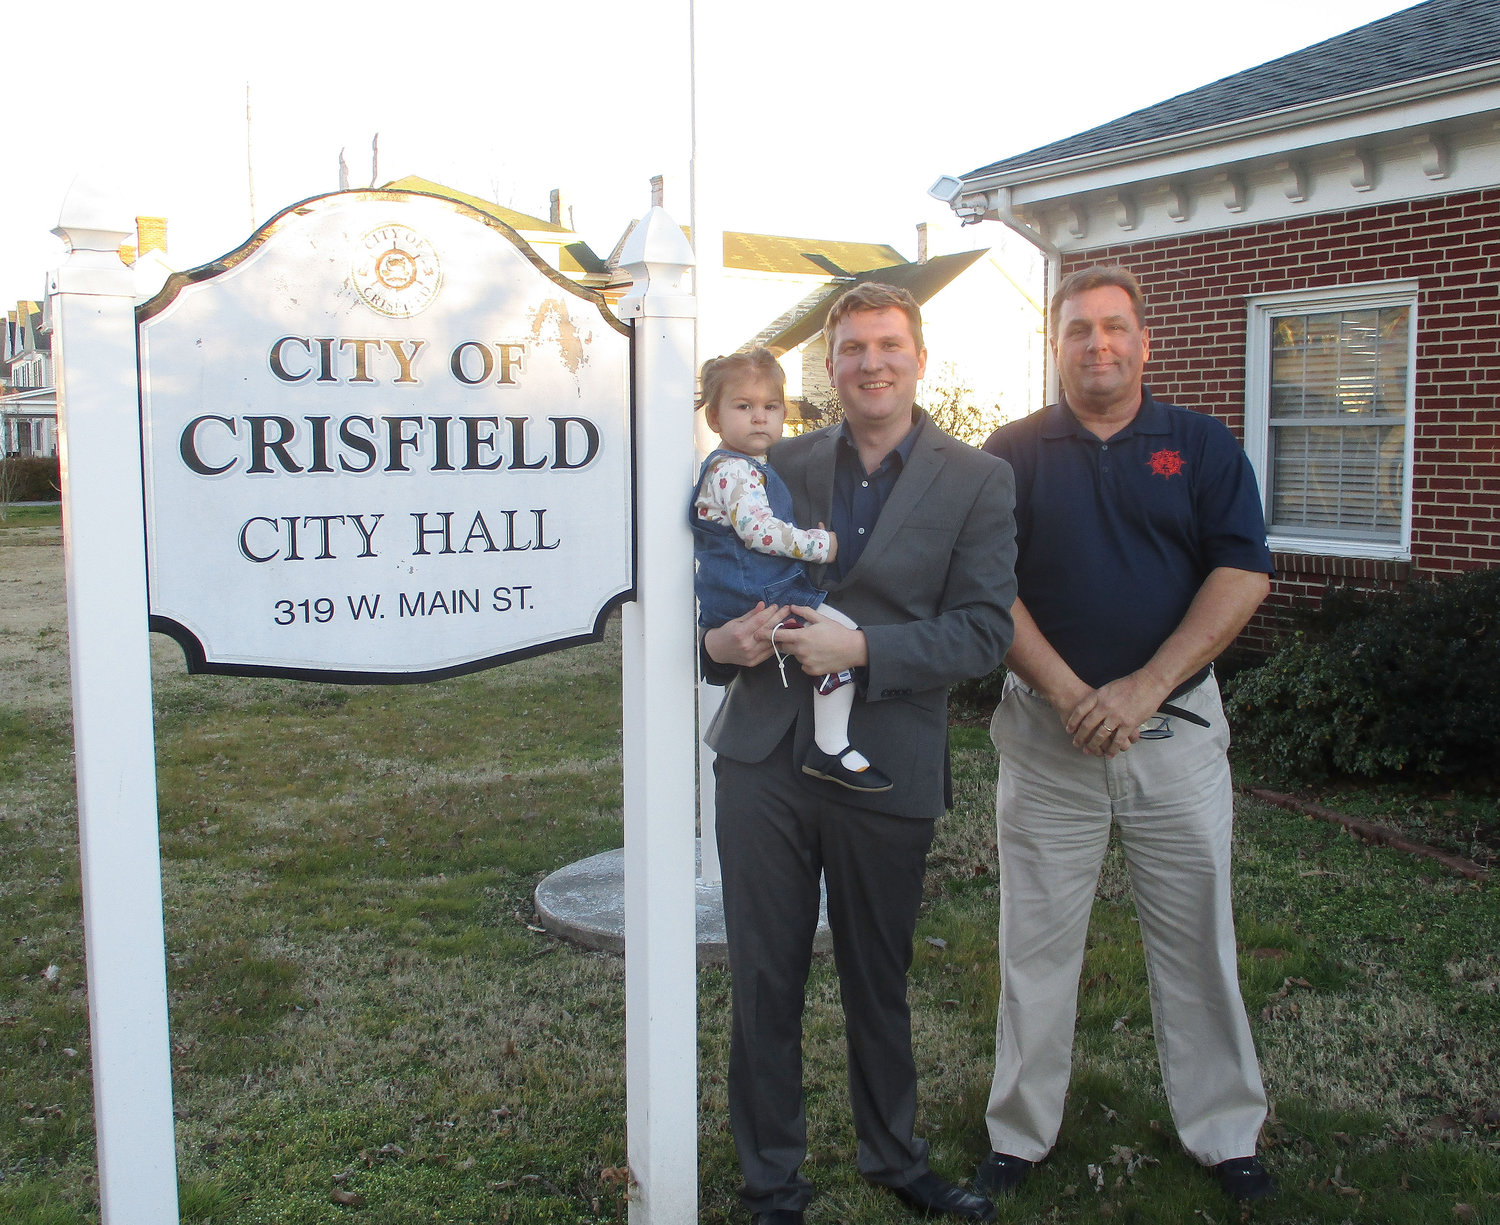 Crisfield City Councilman Casey Goldsborough and his daughter Amelia pose for photos with Mayor Barry Dize after Mr. Goldsborough was sworn-in to take the vacant council seat previously held by Nelson Sheppard.